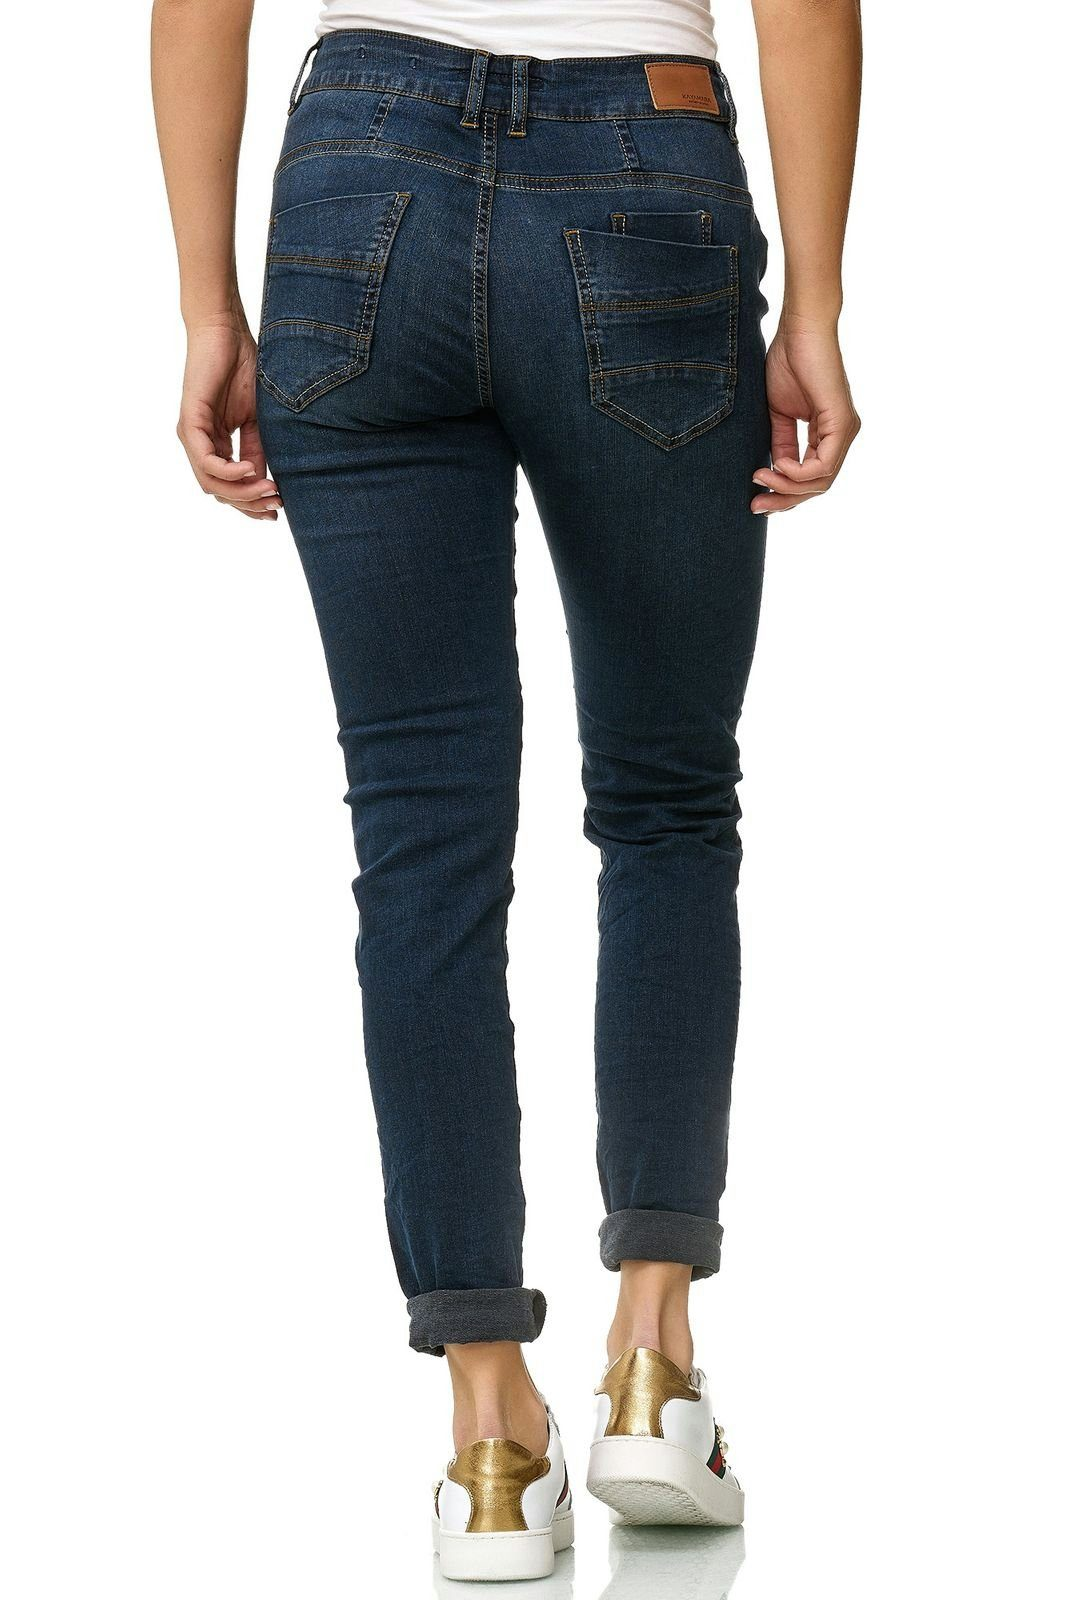 KAYAMARA Regular Fit Jeans, Stylische Jeans in Regular Fit für Damen online kaufen | OTTO